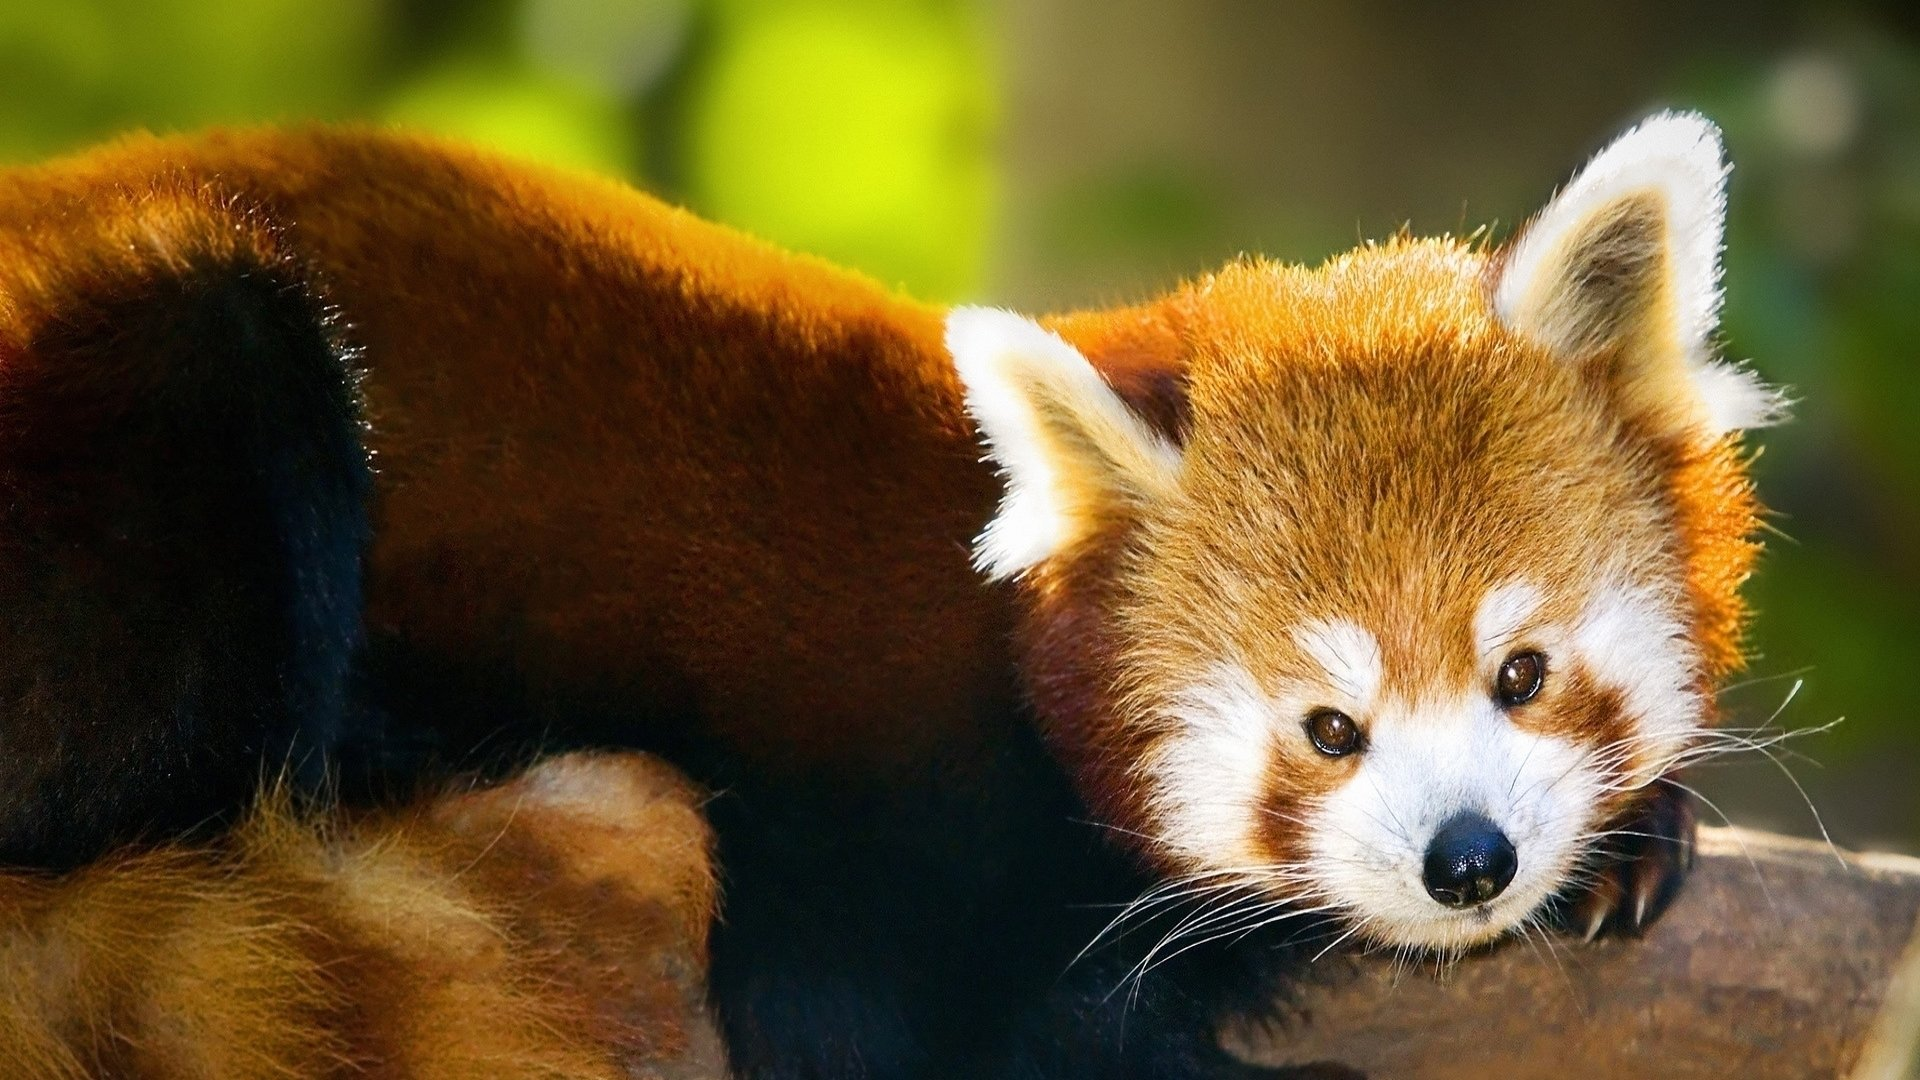 Best Red Panda wallpaper ID:64125 for High Resolution full hd 1920x1080 computer